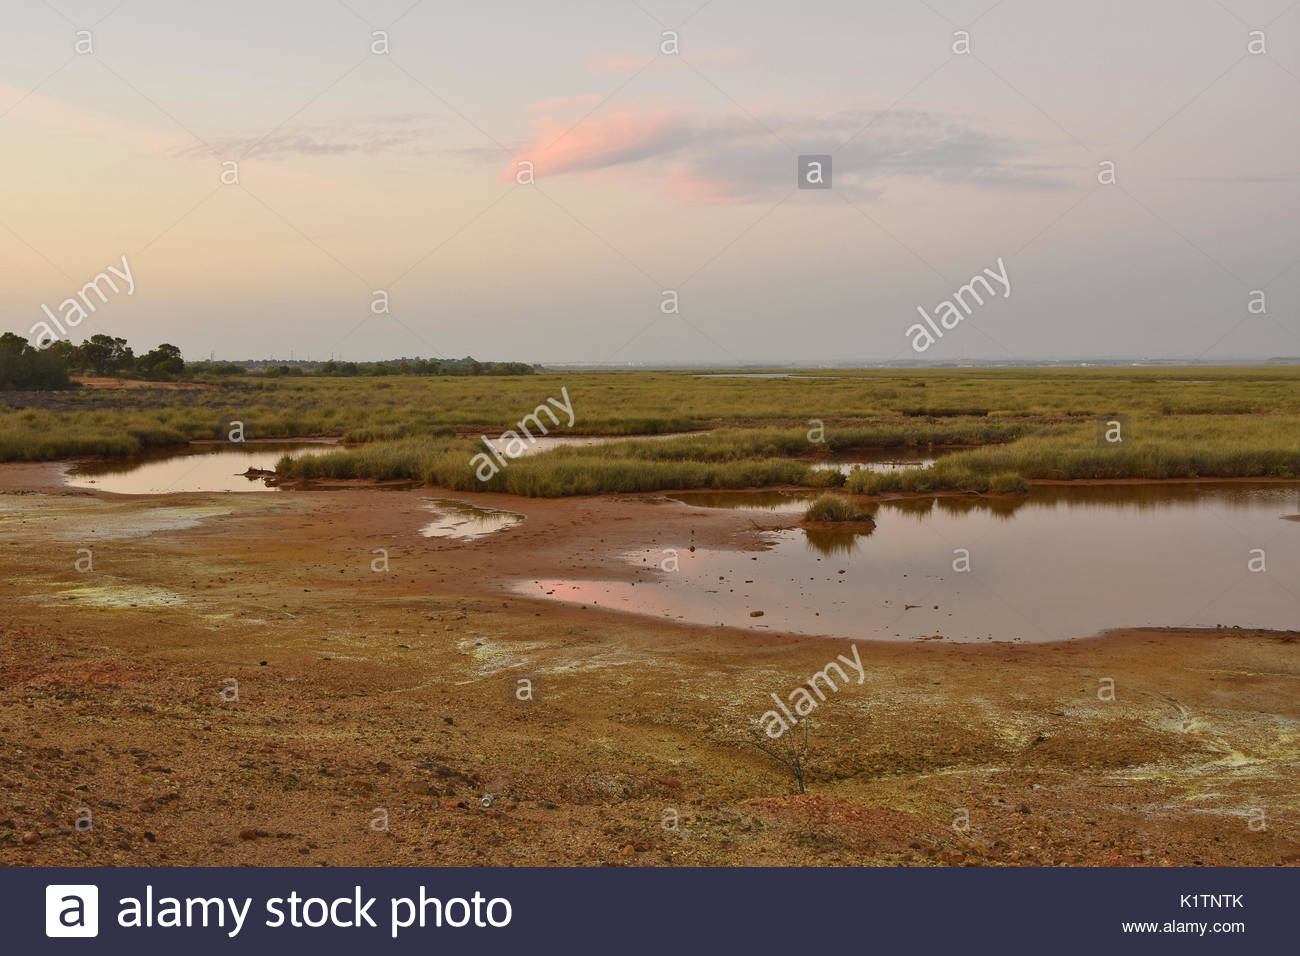 Chemical waste dumped in wetlands area near Huelva southern Spain Europe - Stock Image